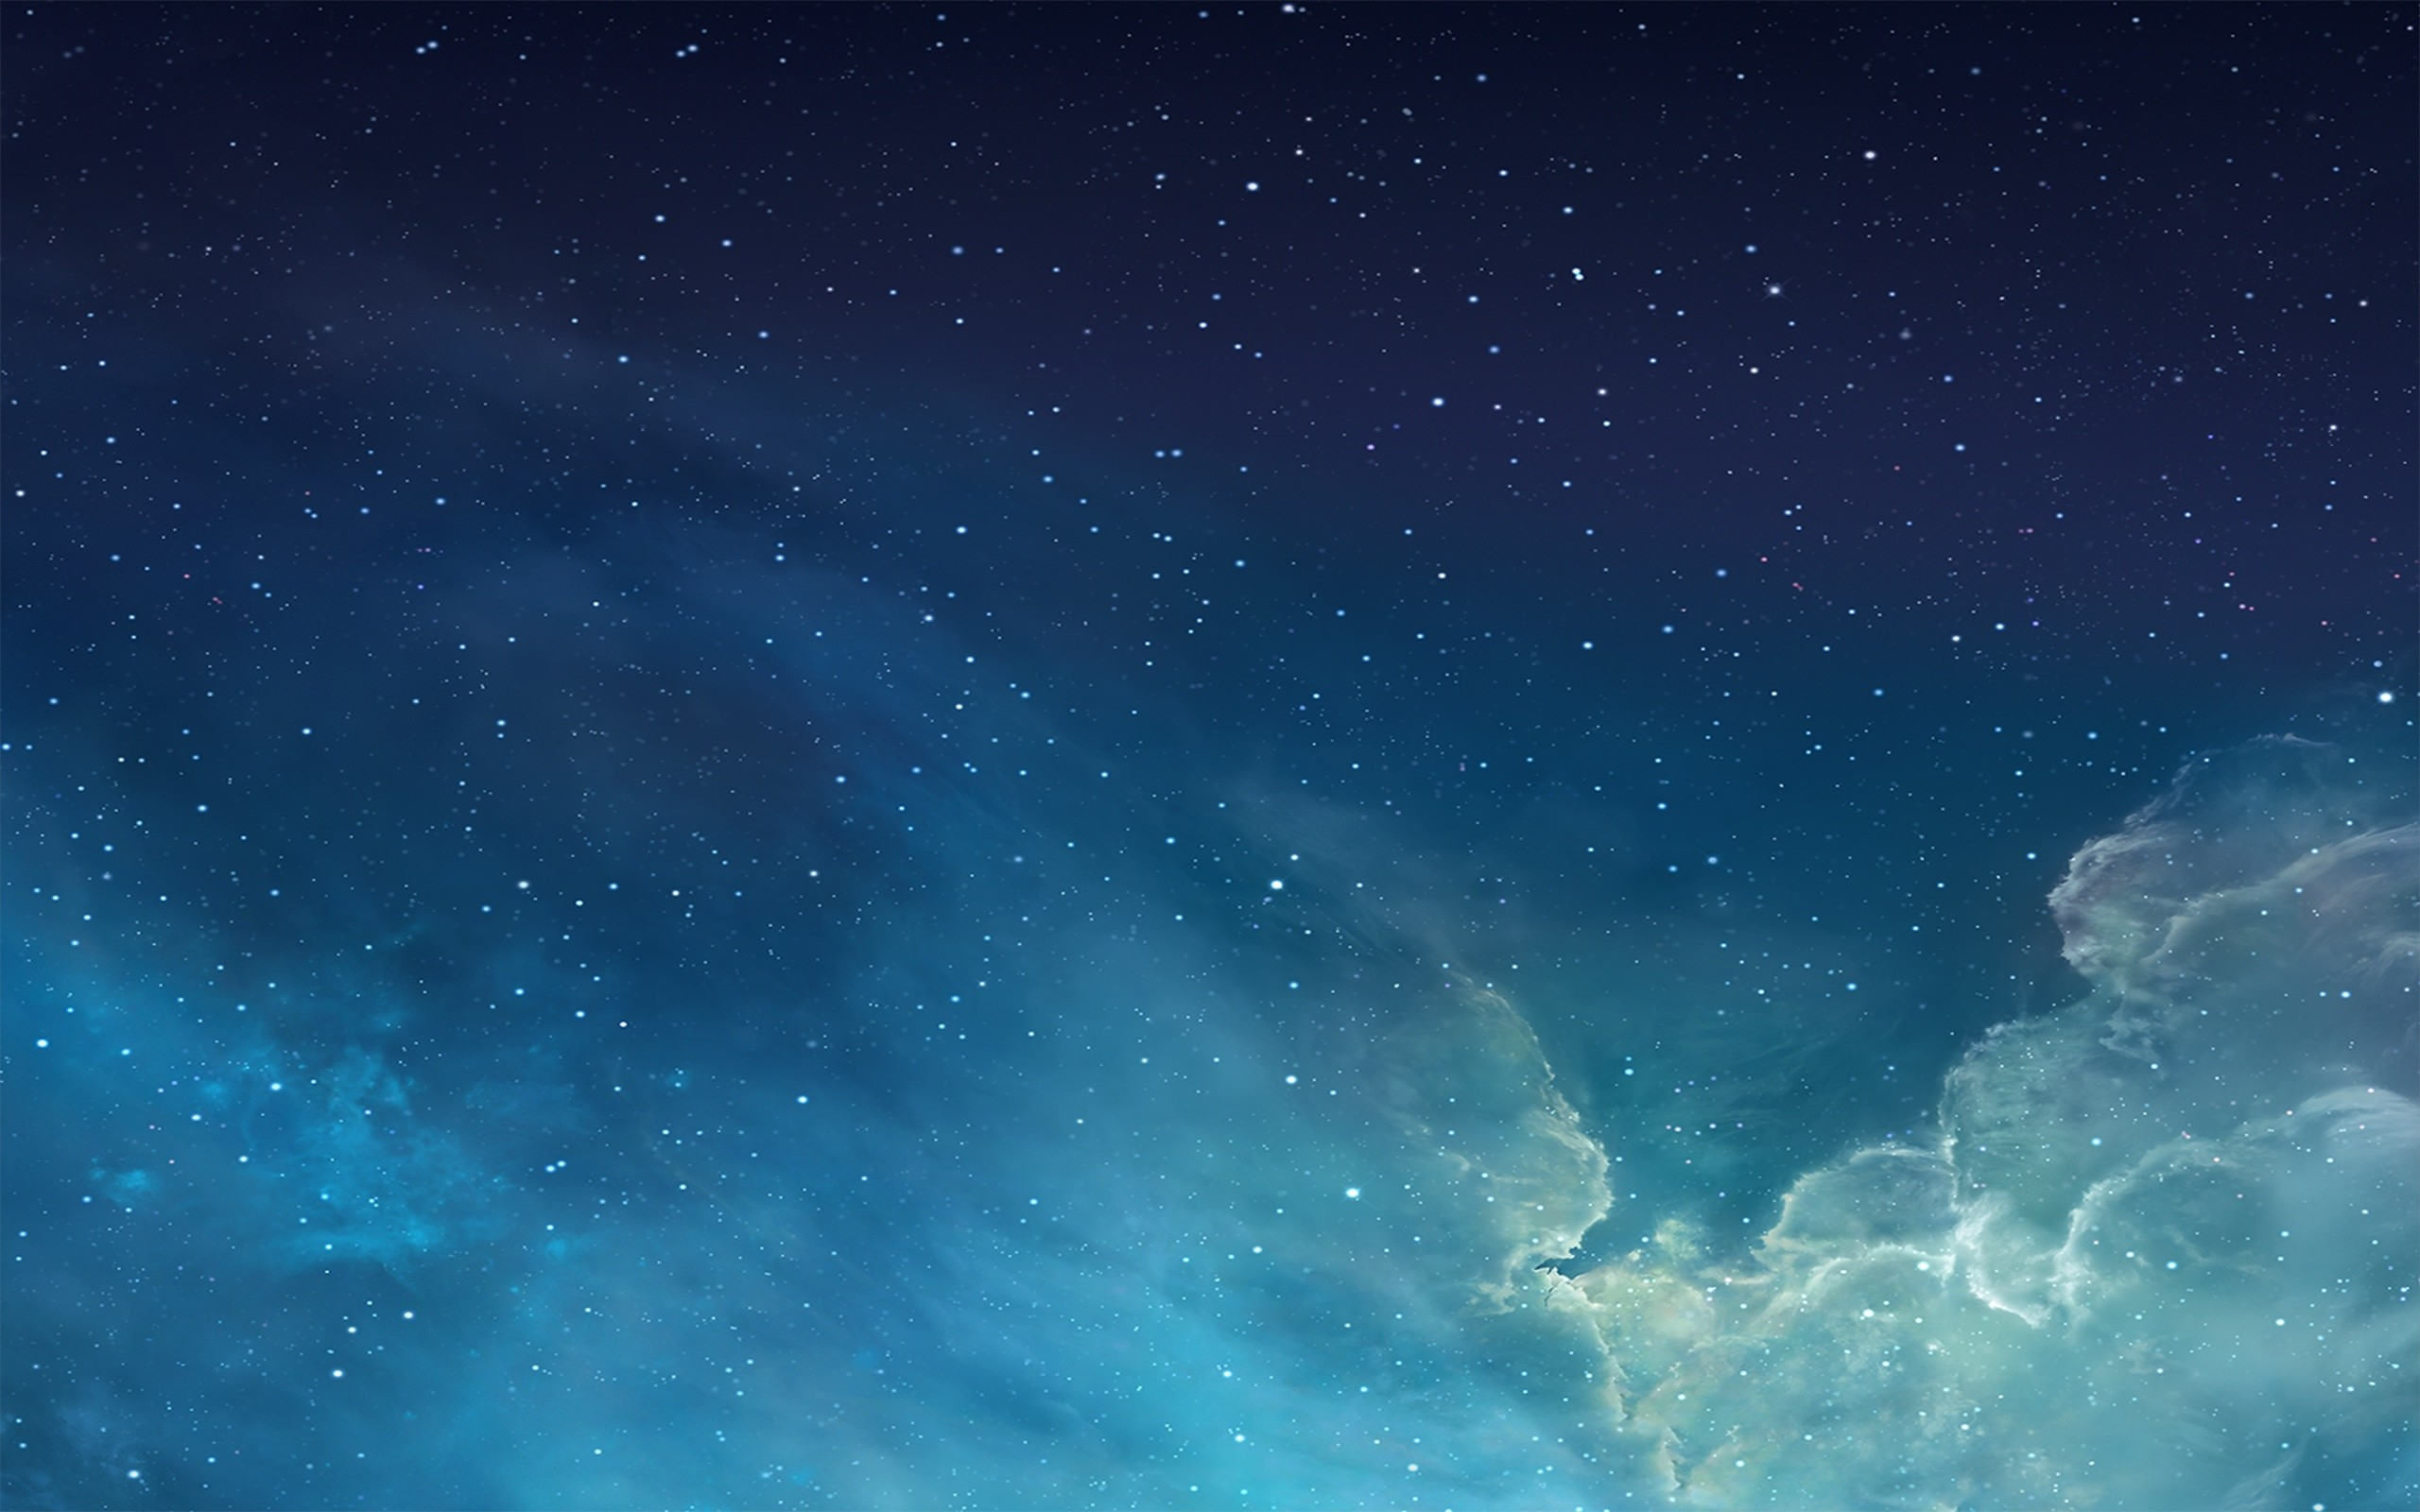 Blue Galaxy Wallpapers Hd Wallpaper Collections 4kwallpaper Wiki